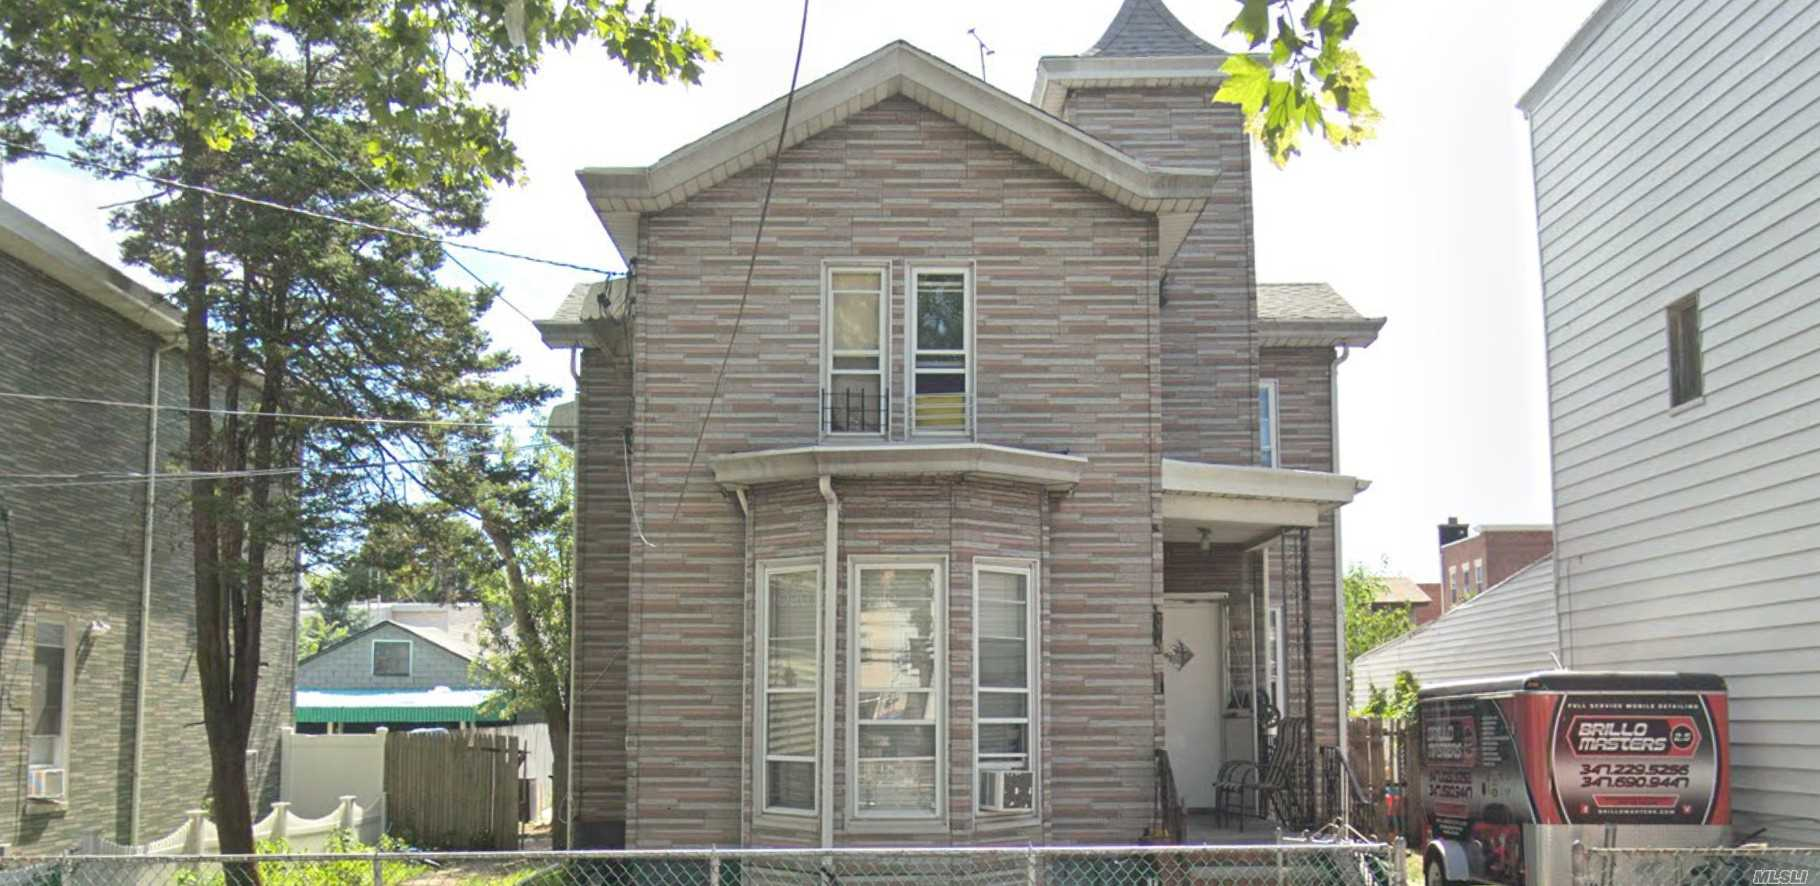 Property for sale at 9514 93rd Street, Ozone Park NY 11416, Ozone Park,  New York 11416